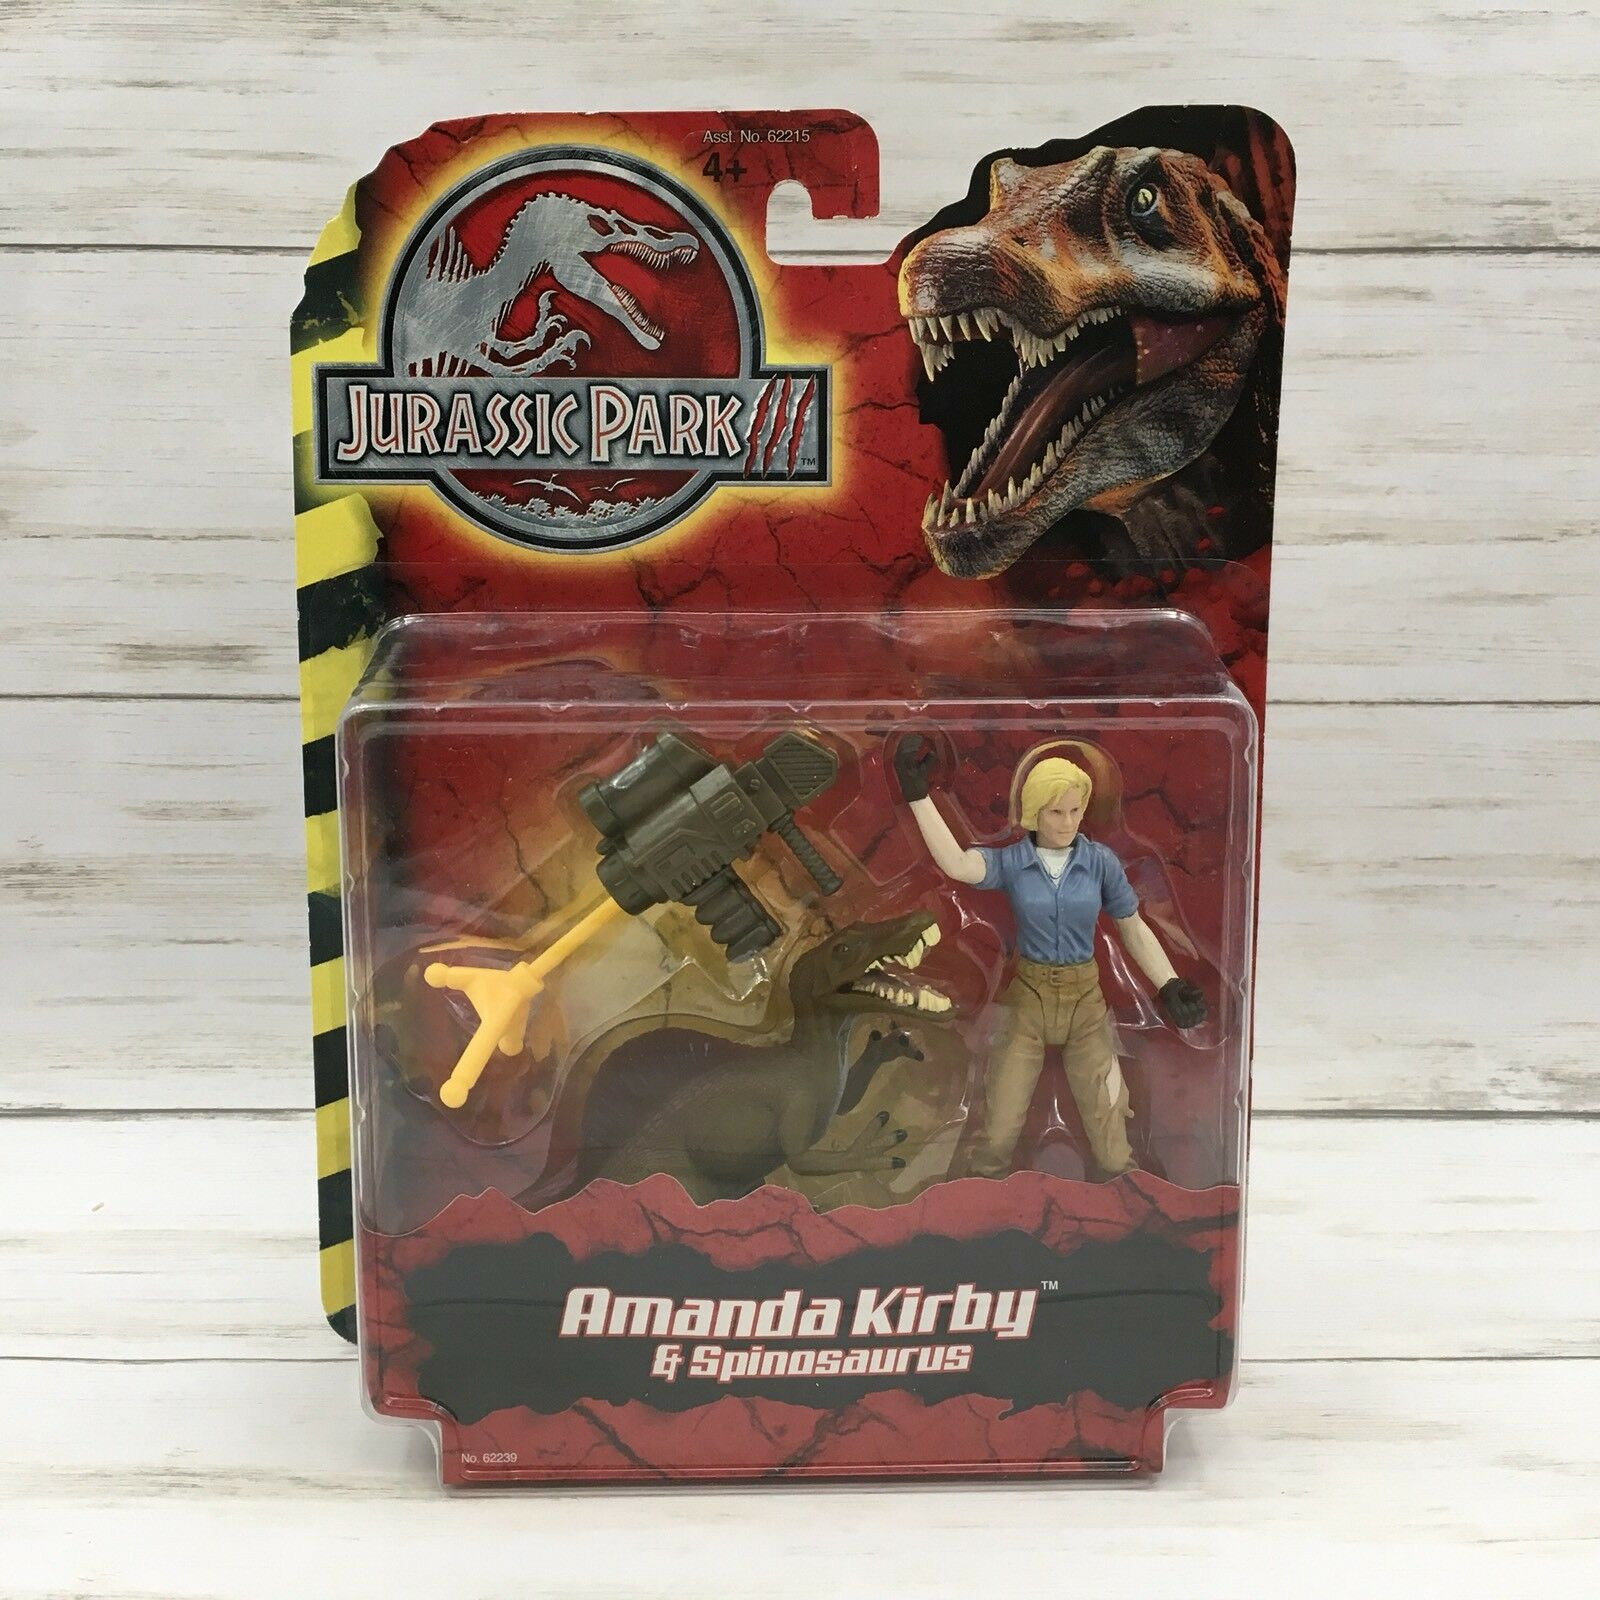 New Hasbro 2000 Jurassic Park 3 Amanda Kirby & Spinosaurus Action Figure  62239